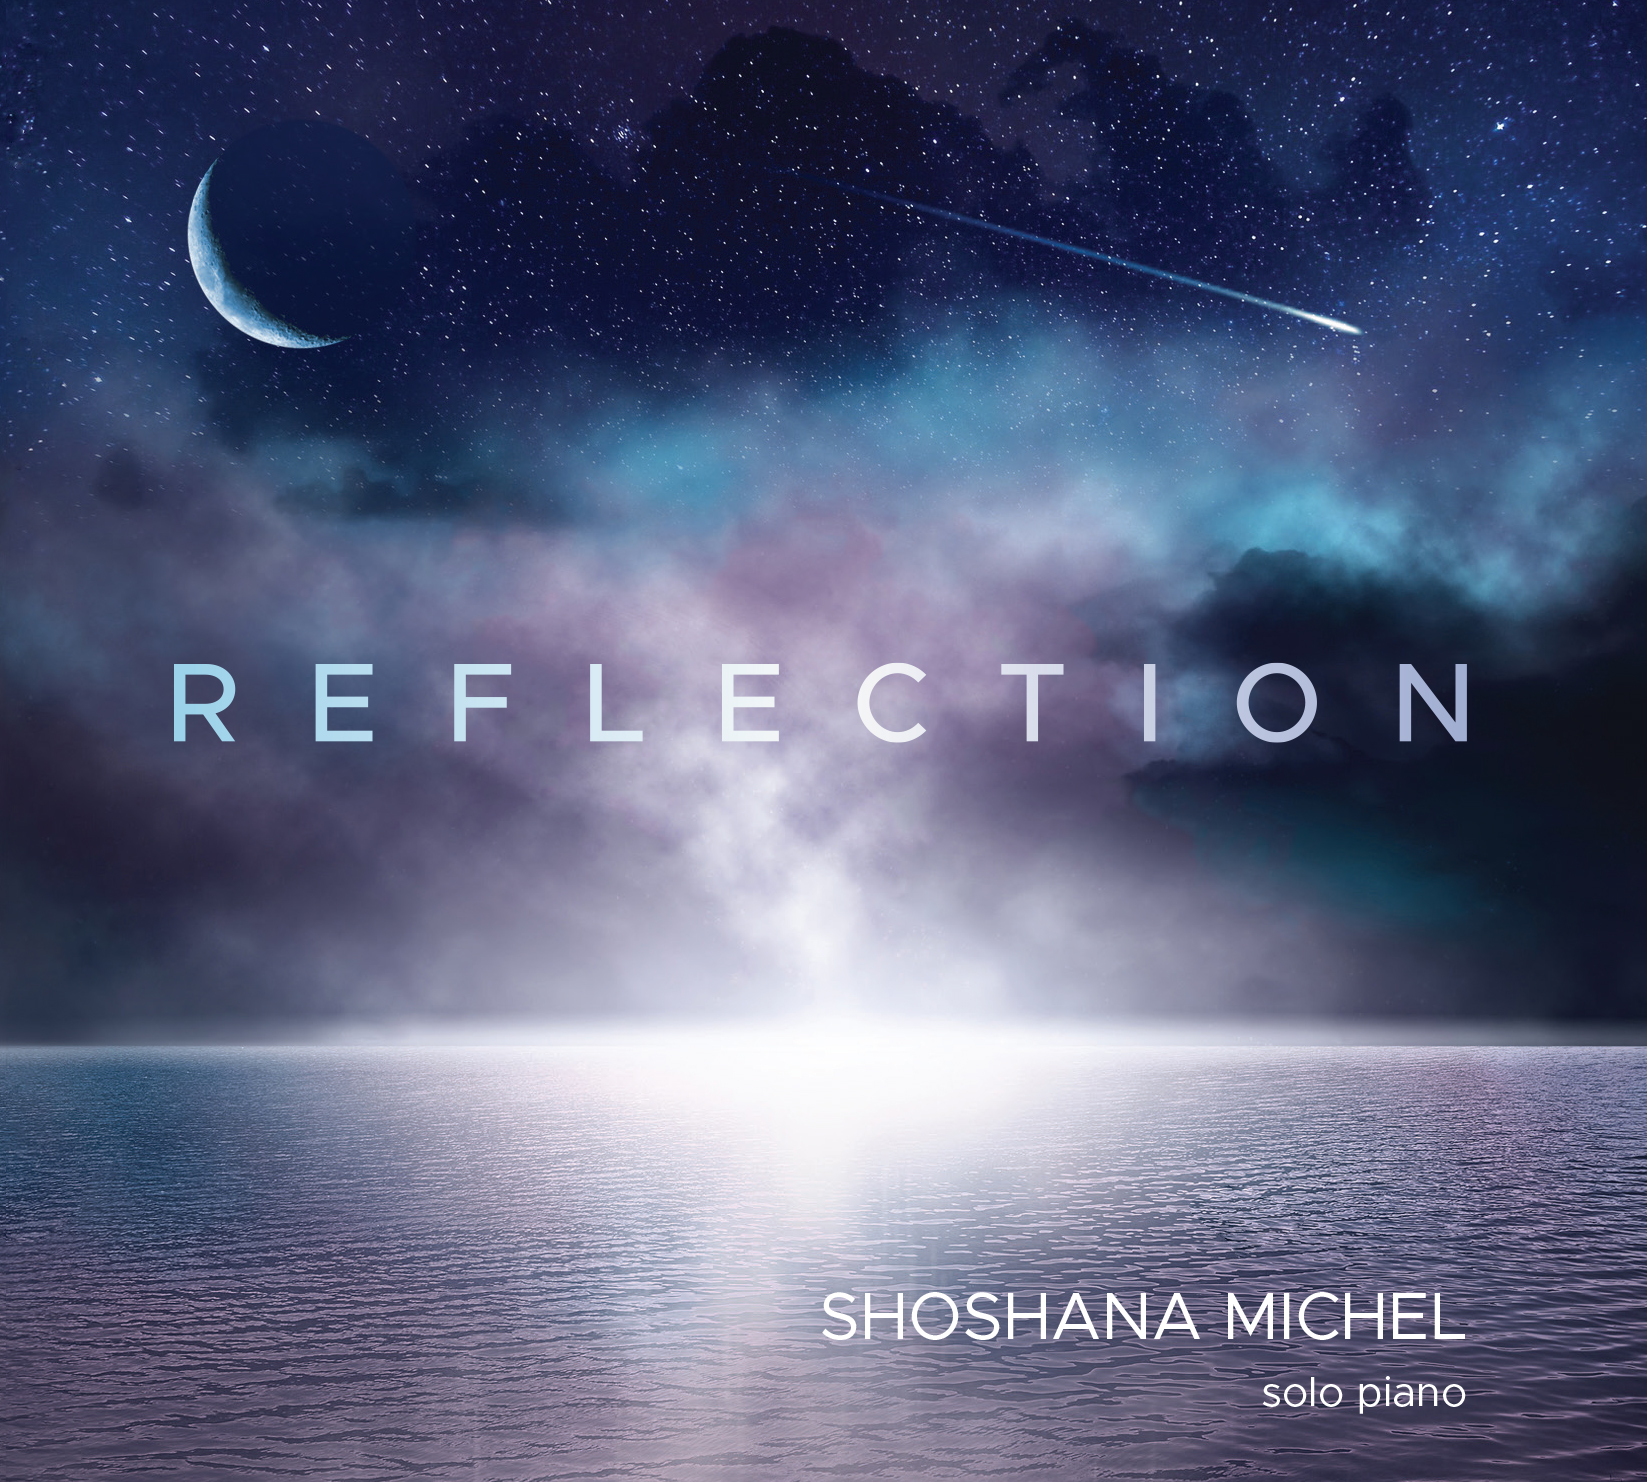 Reflection- Shoshana Michel